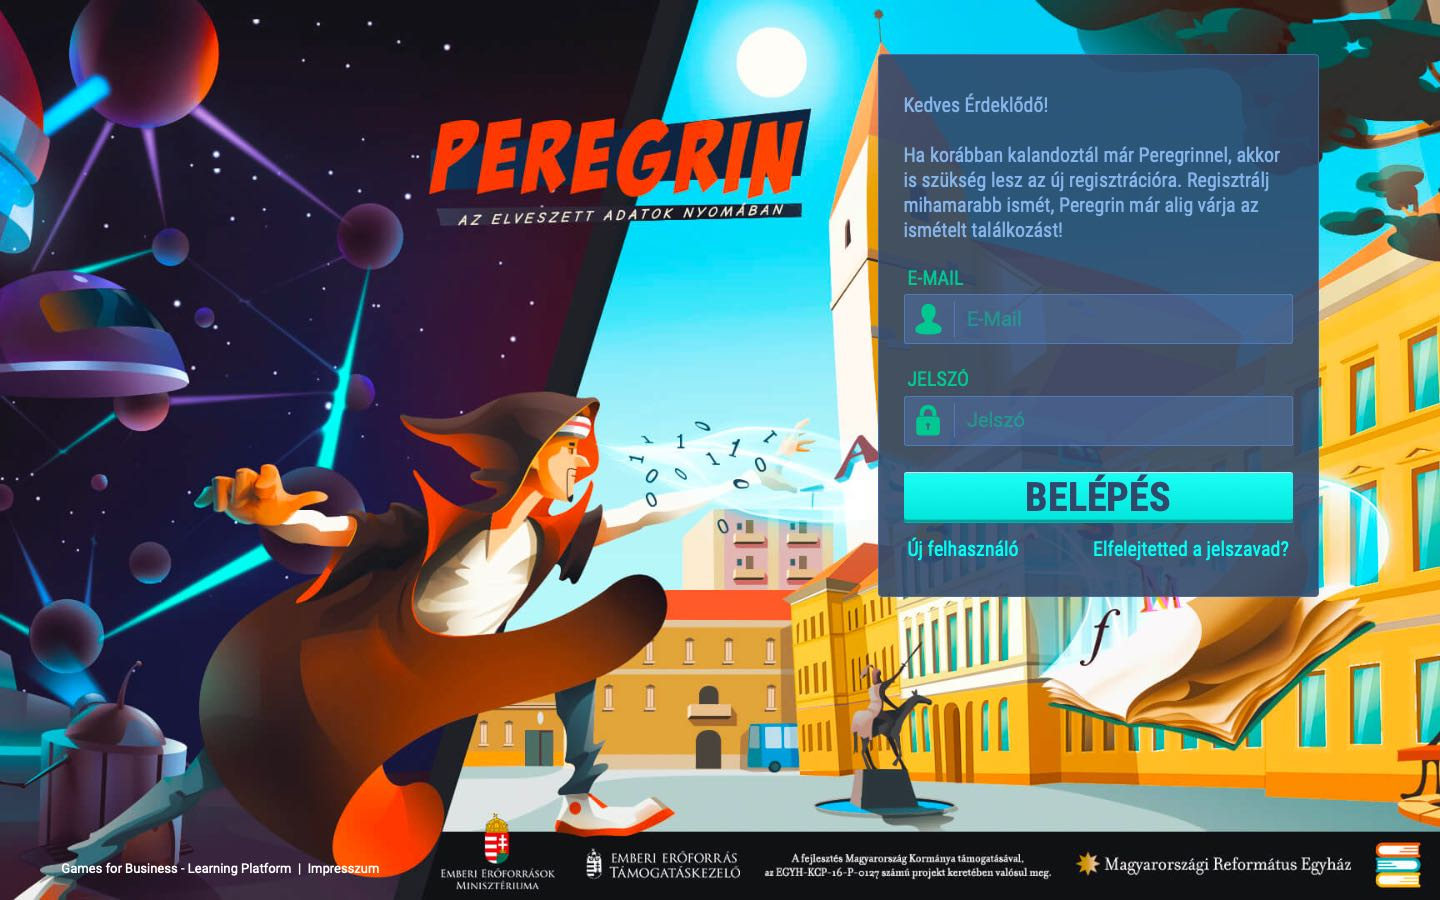 Peregrin - virtual journey through the history of Reformed schools